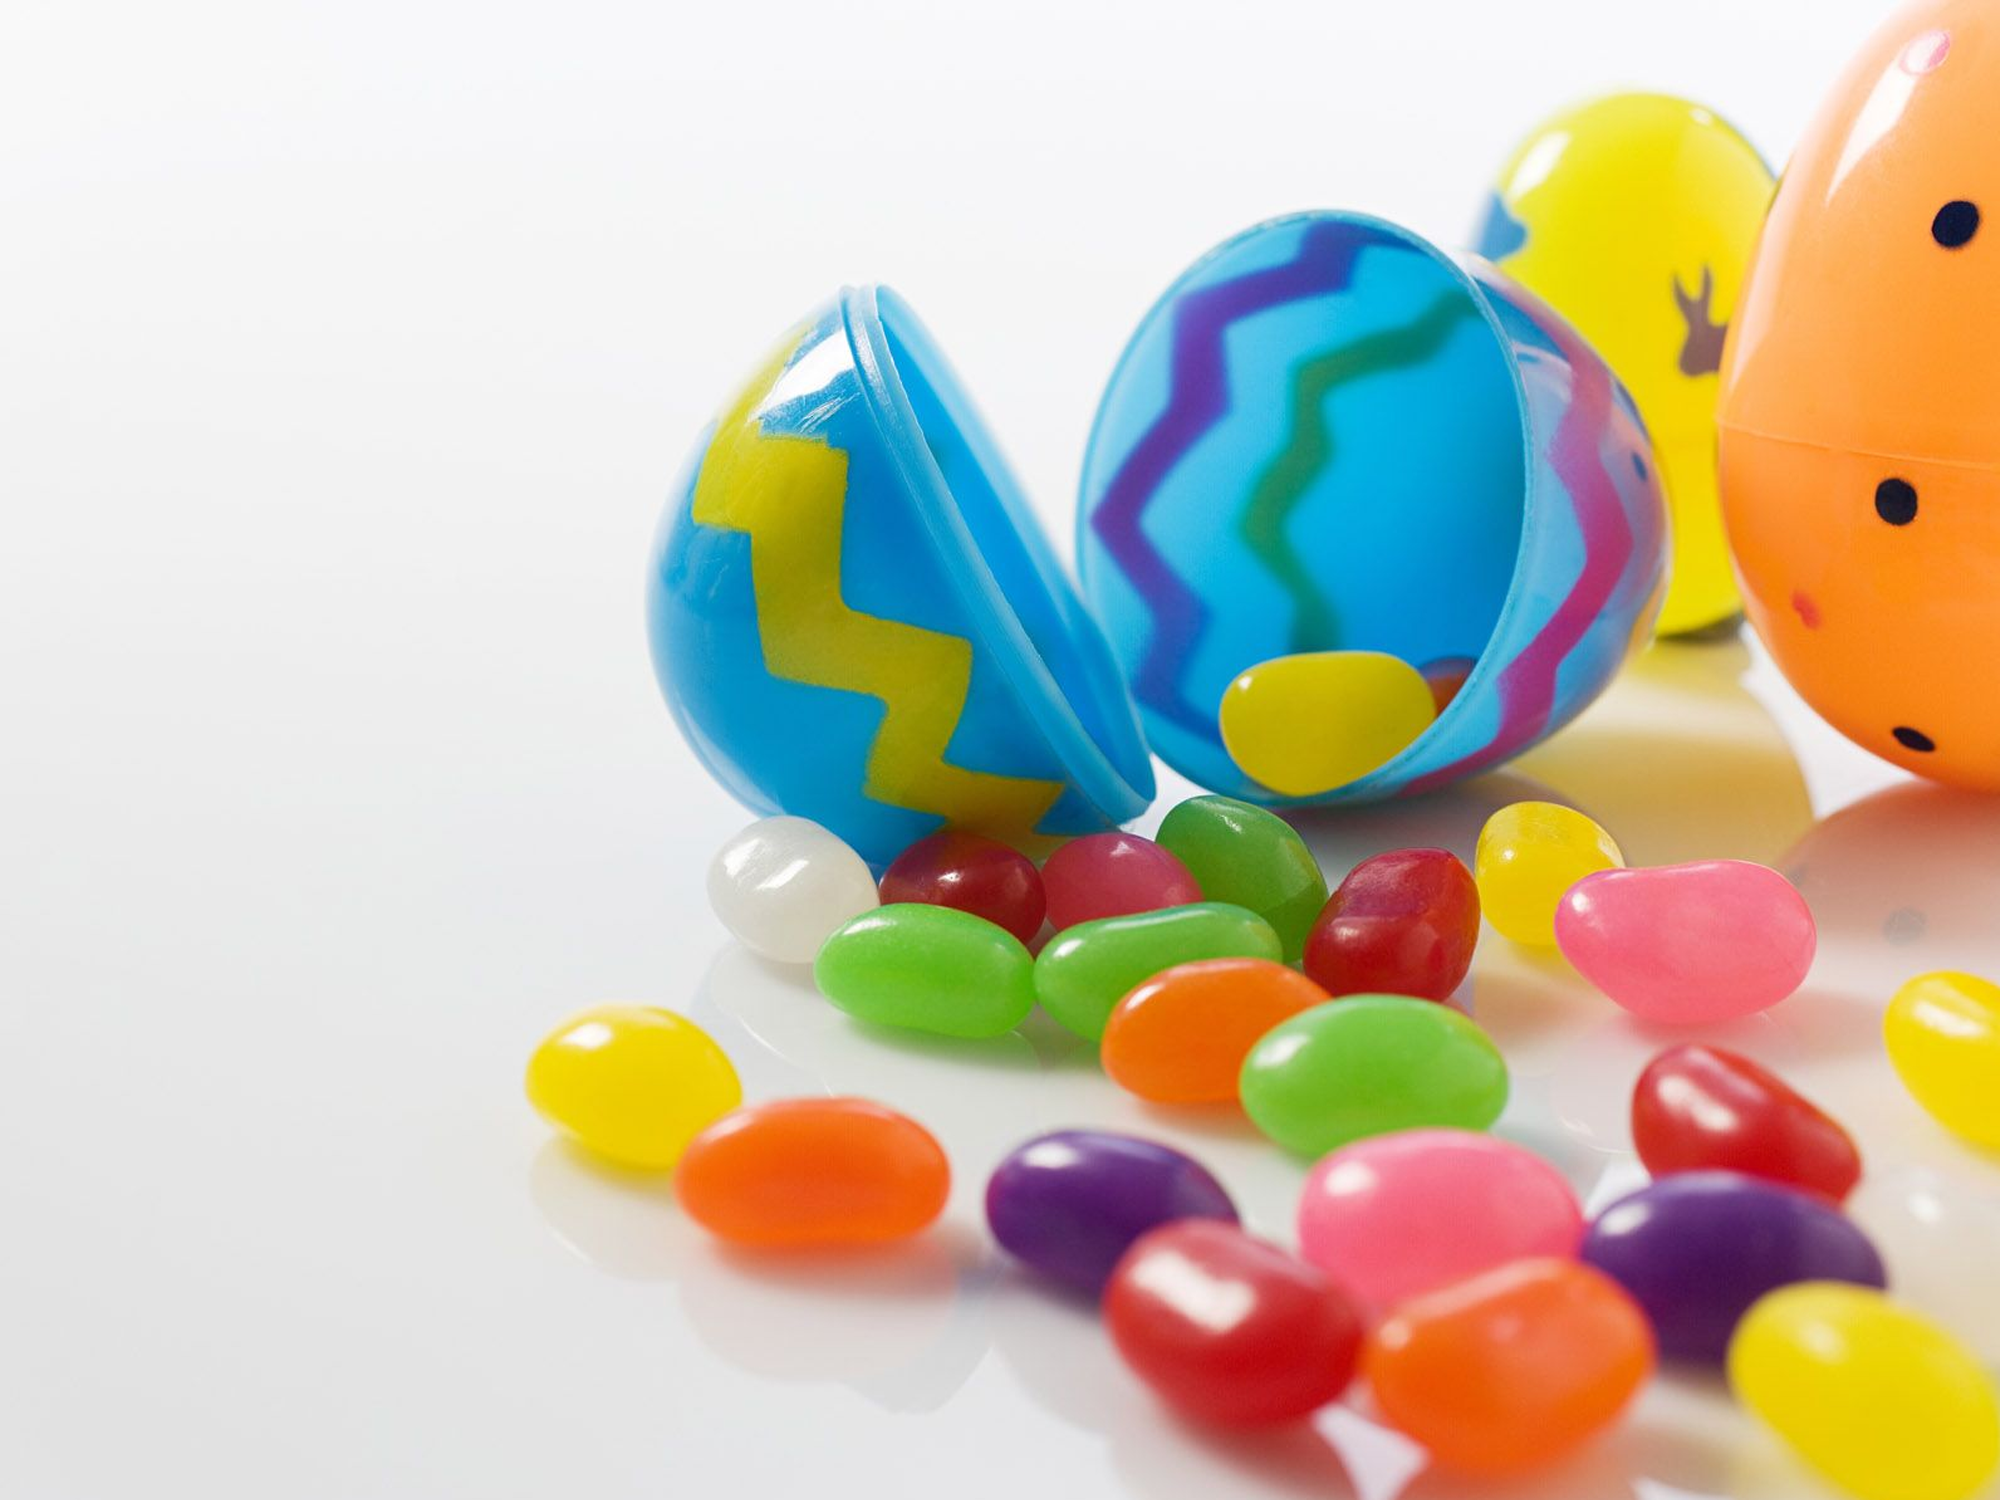 Free Easter wallpaper featuring colorful plastic Easter eggs and jellybeans